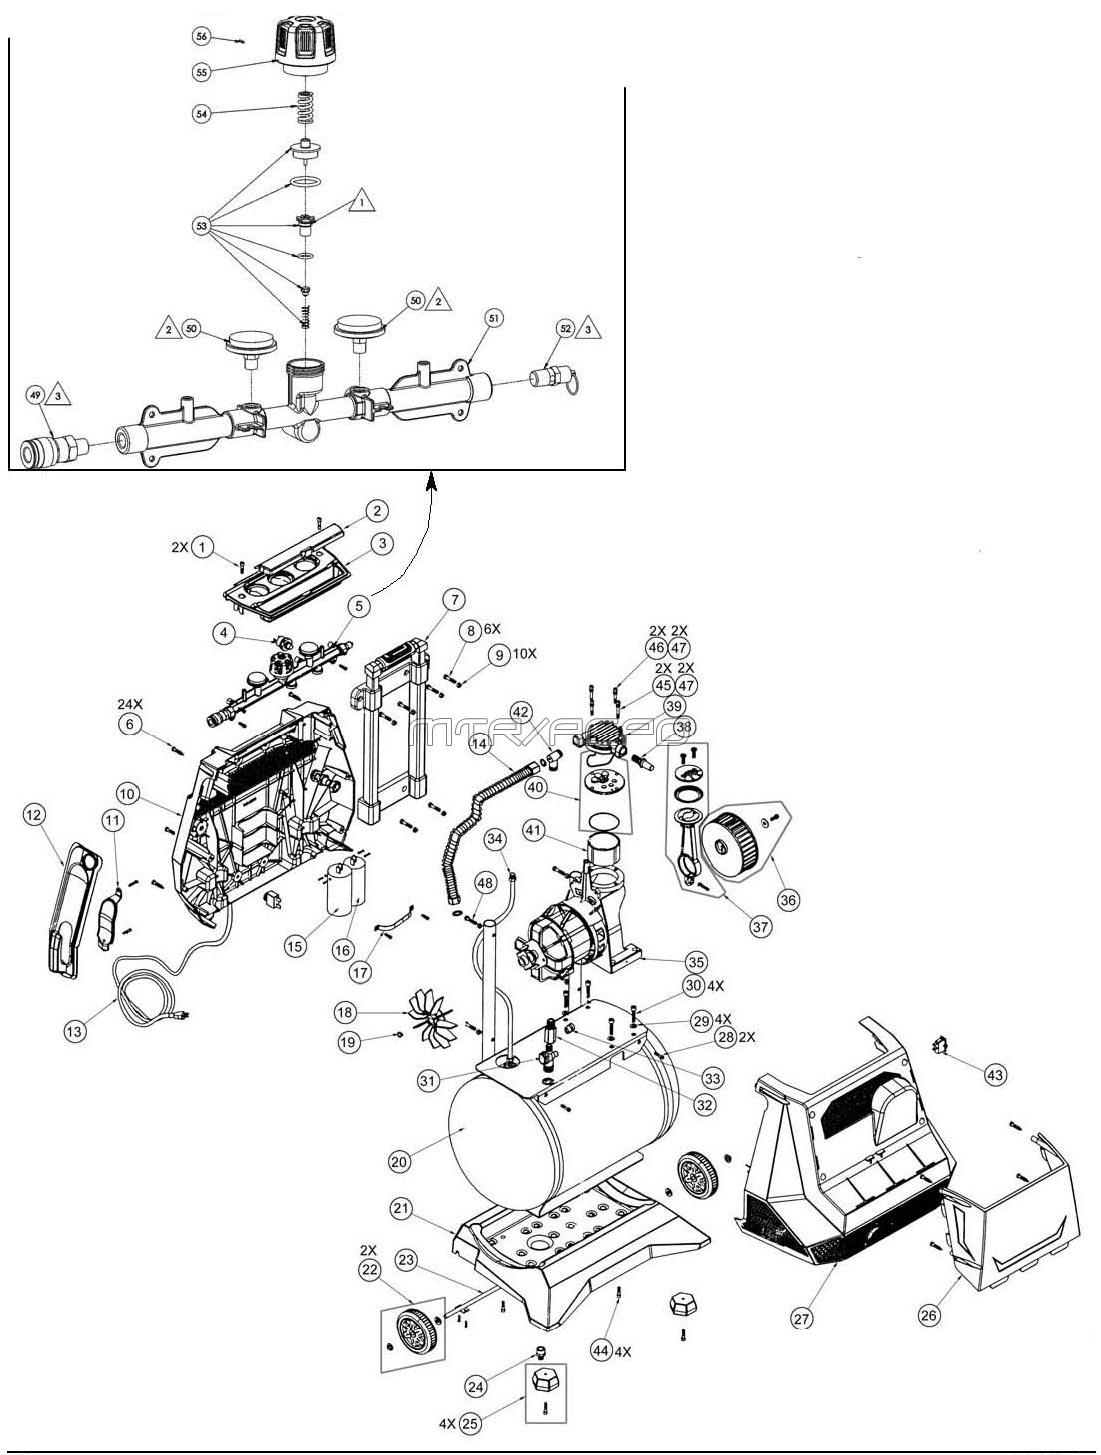 Ingersoll Rand Air Compressor Manual